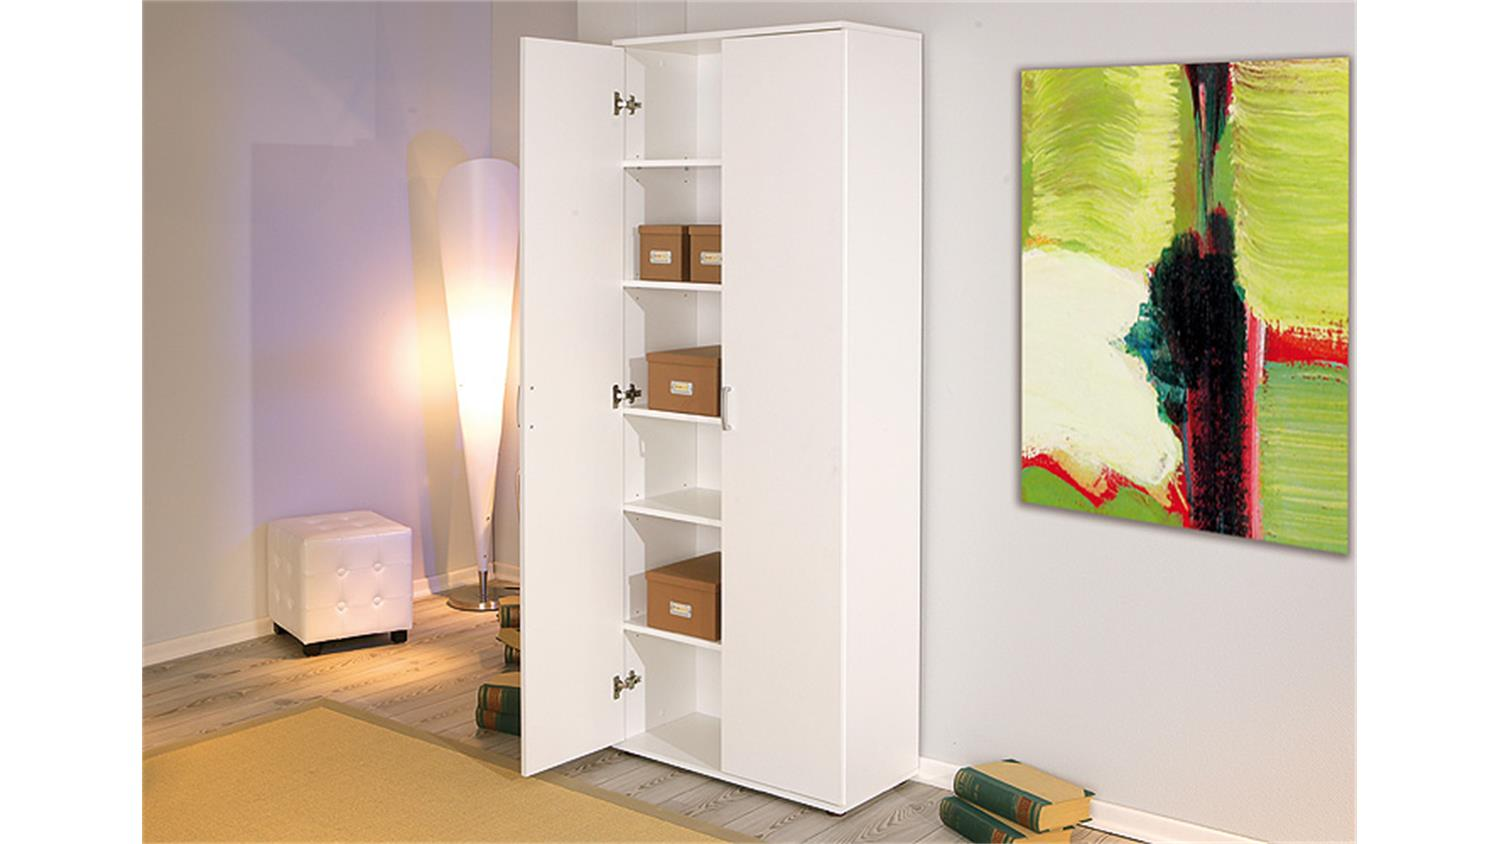 mehrzweckschrank 2 t riger schrank in wei dekor b 70 cm. Black Bedroom Furniture Sets. Home Design Ideas